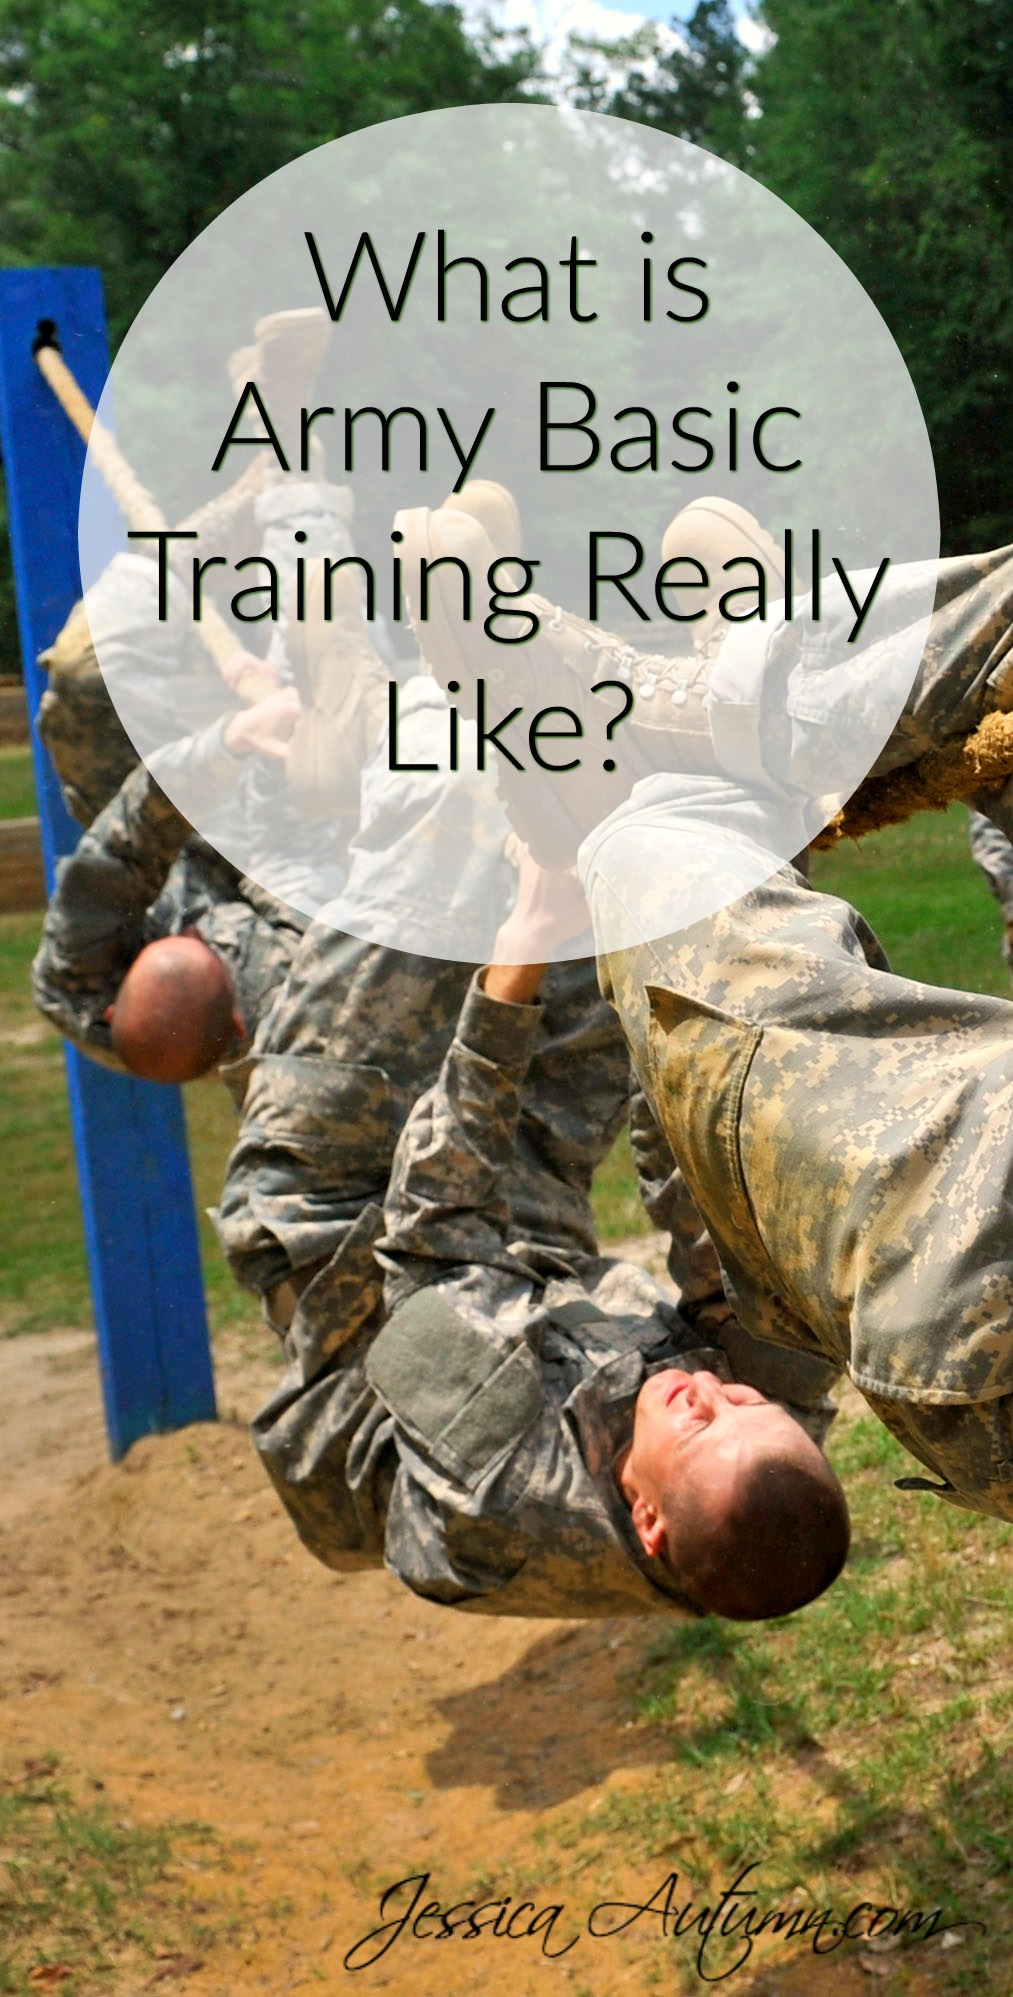 What Is Army Basic Training Really Like? I've been thinking about going joining the military lately, but I've been pretty nervous. This article really helped me to know what to expect. Becoming a soldier would be so awesome!